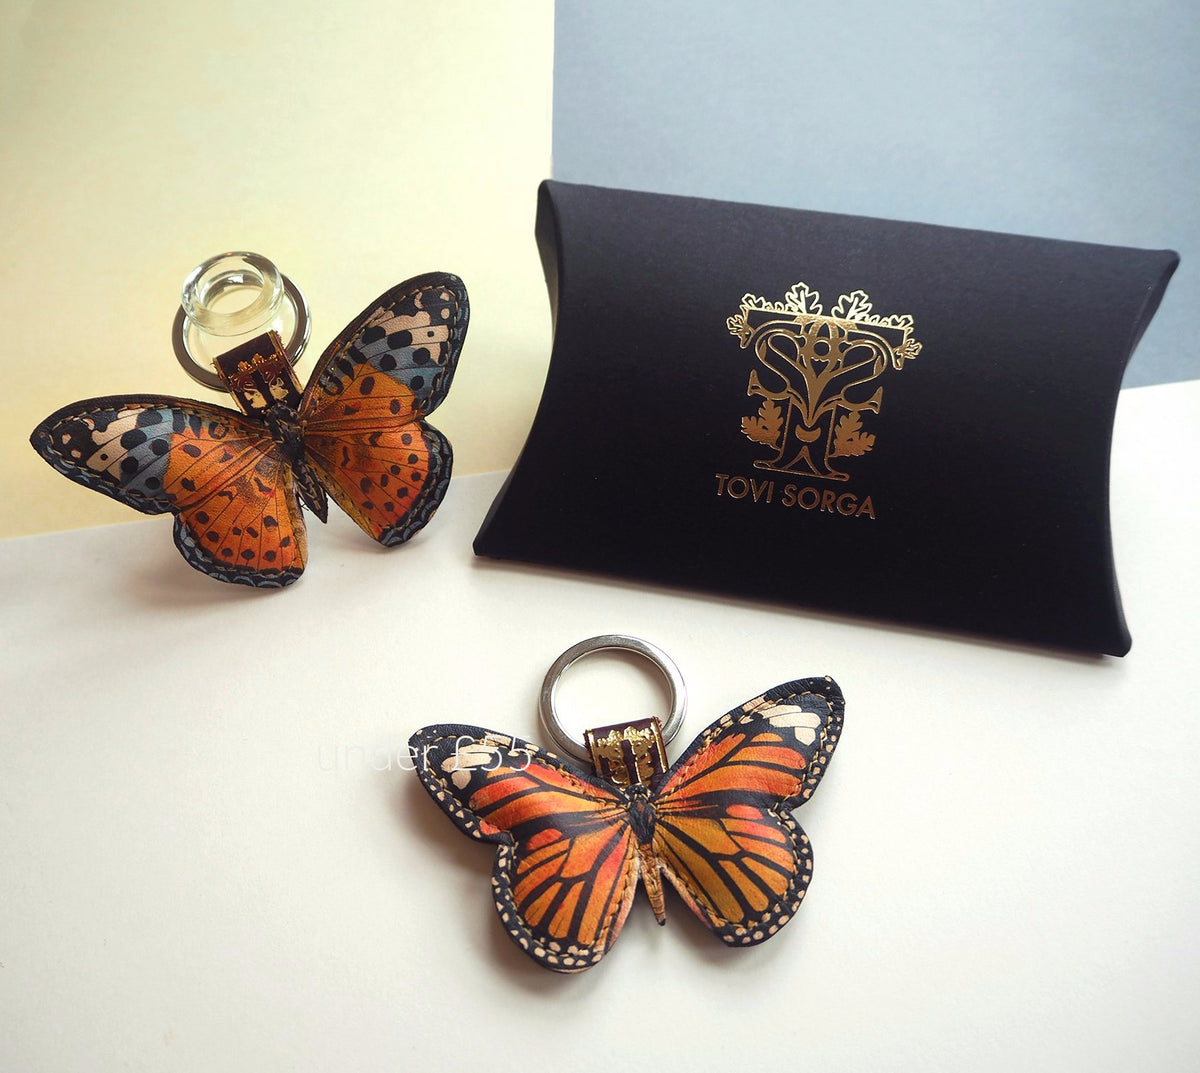 Leather gifts for women: Monarch butterfly bag charm / key ring: red and blue butterfly by UK accessories brand Tovi Sorga